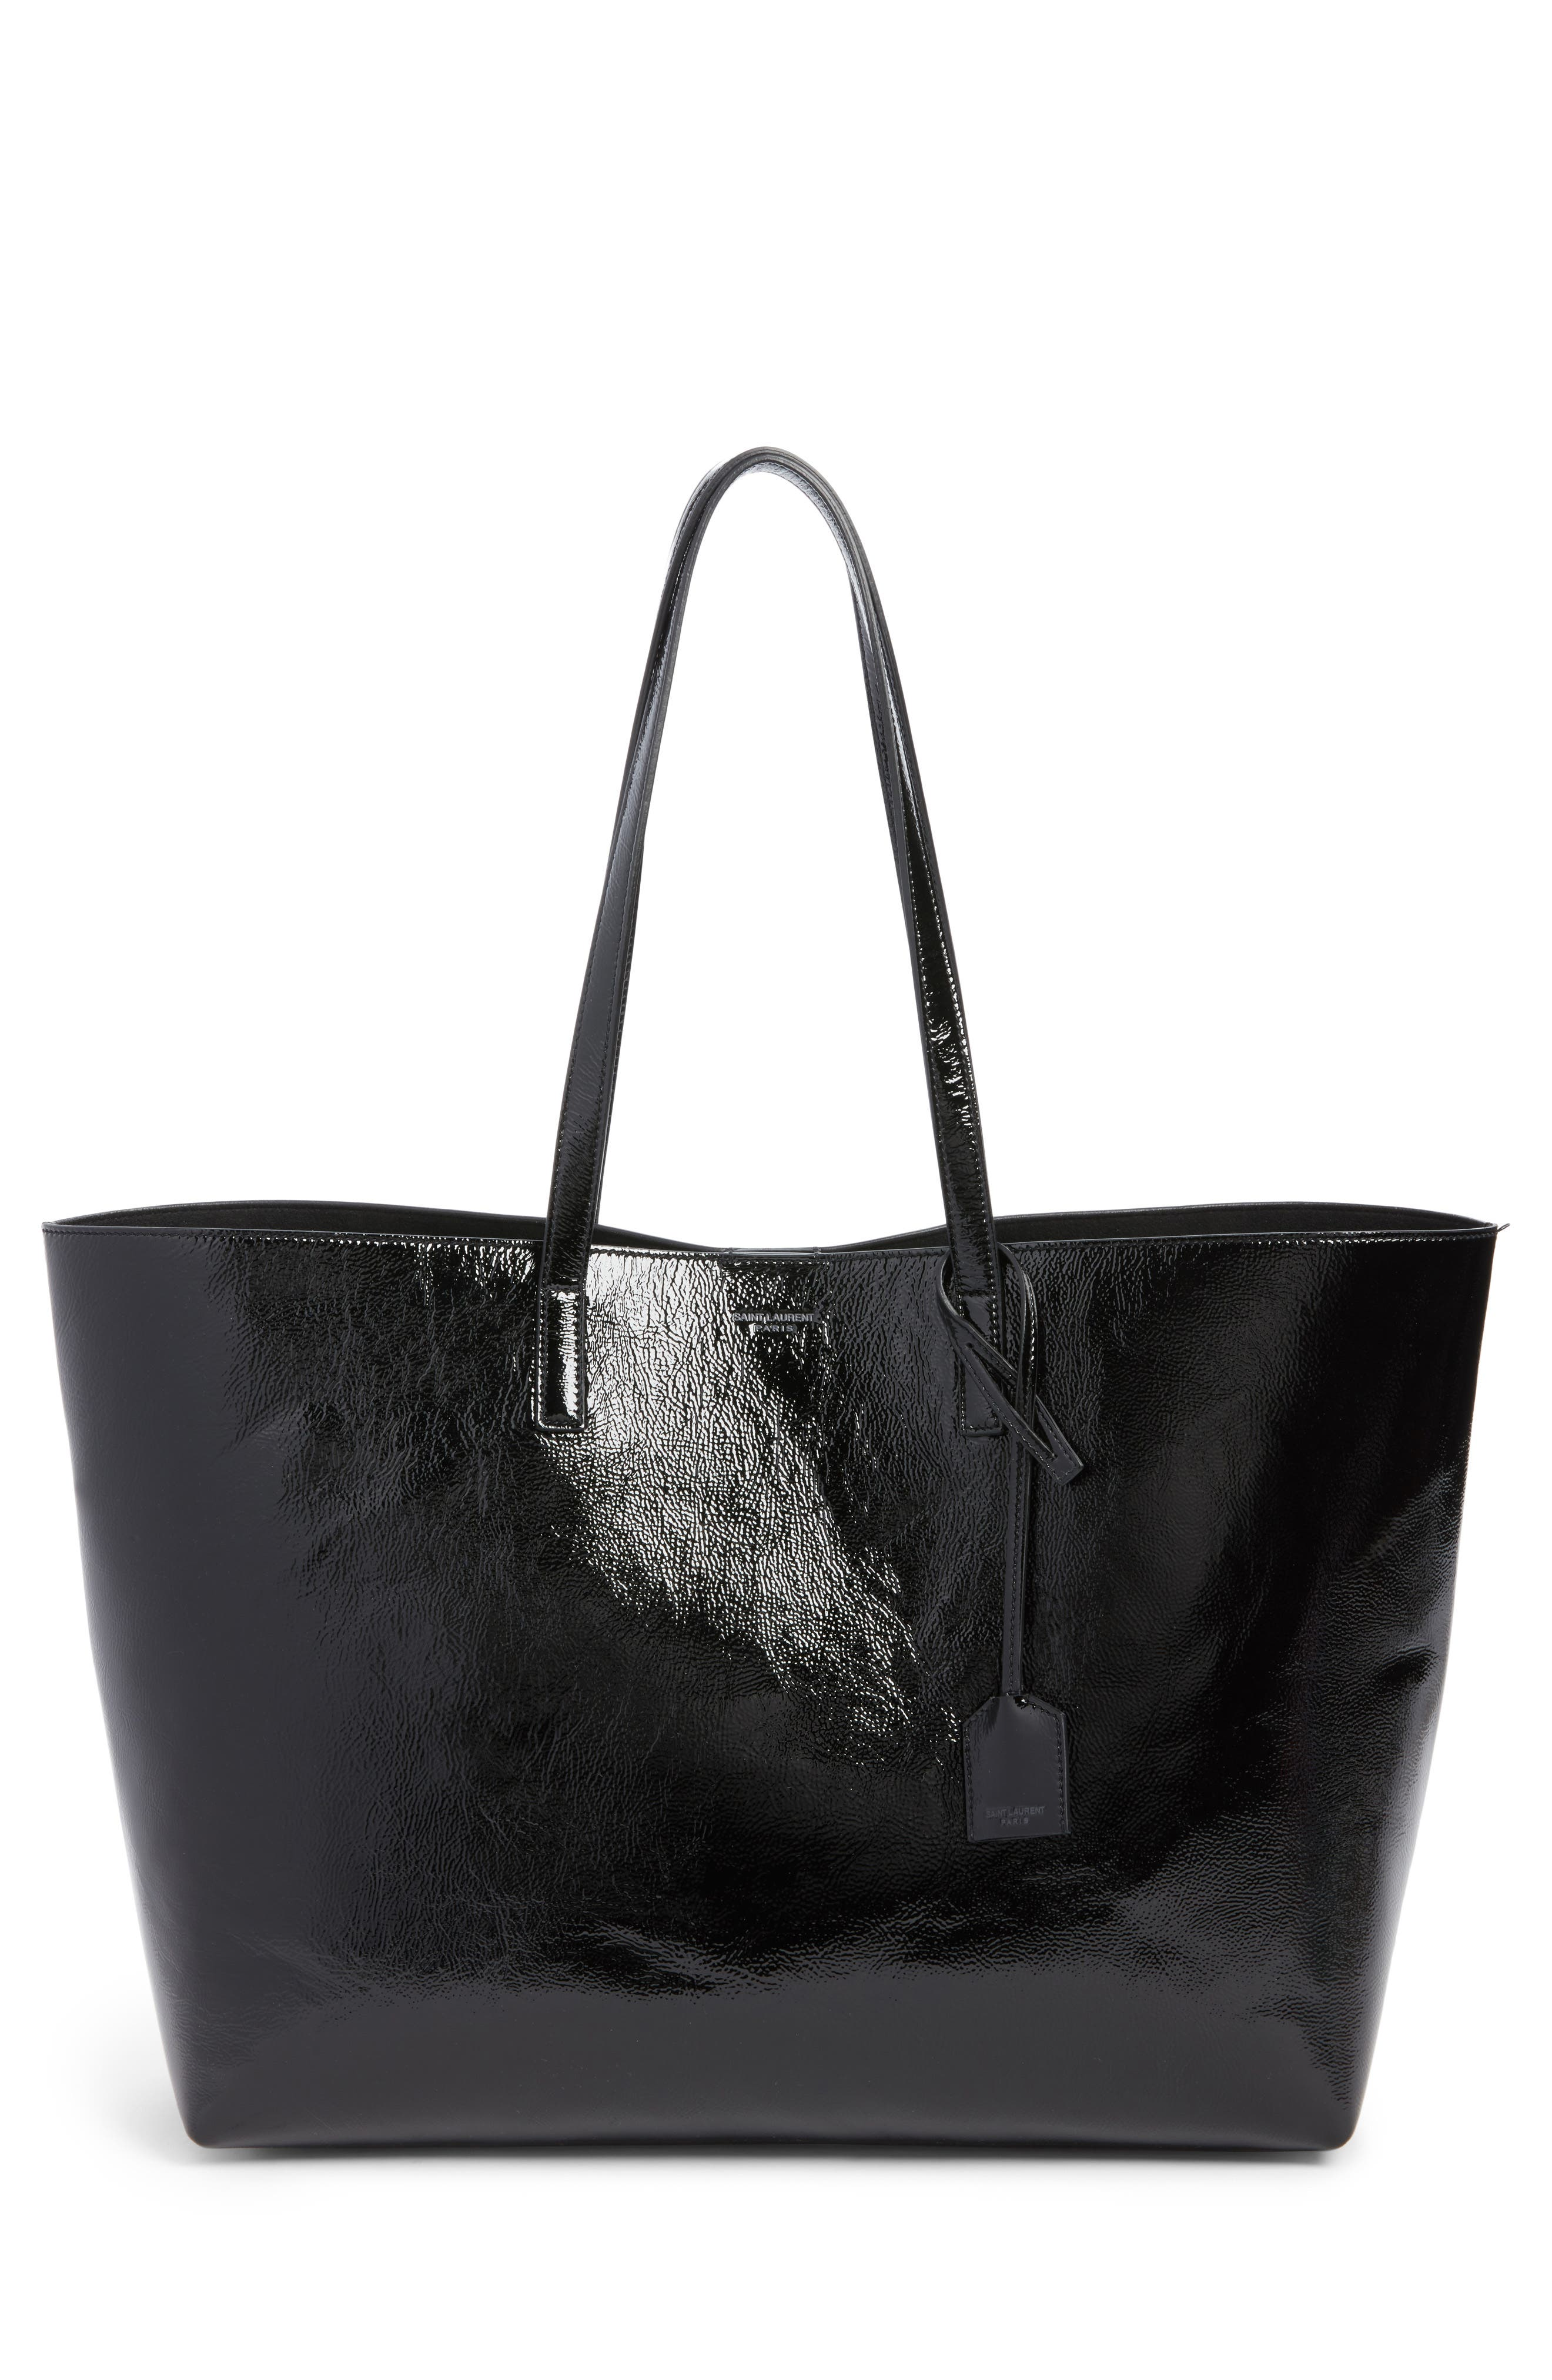 East/West Leather Tote,                         Main,                         color, 001